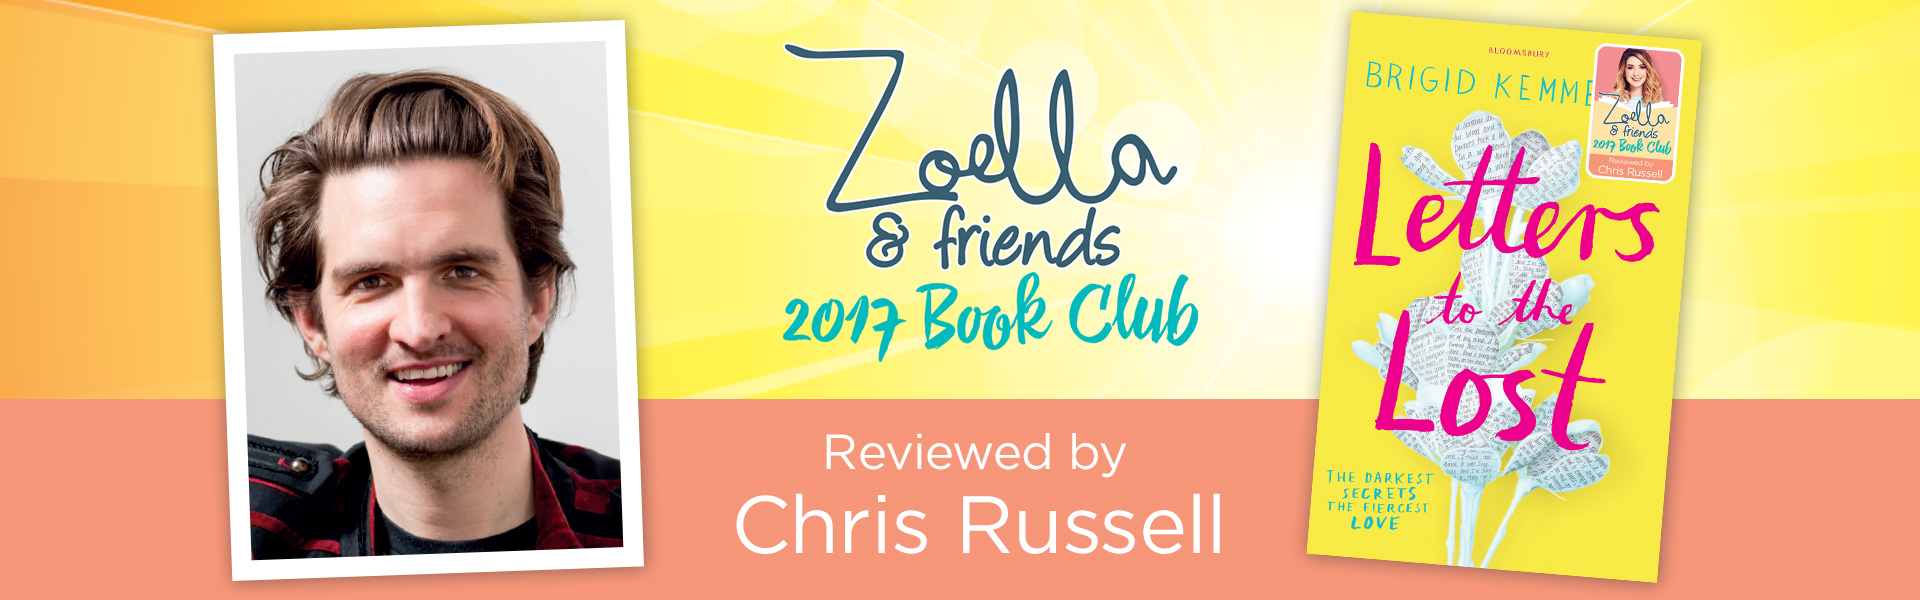 zbc&f-summer2017-reviews-letters